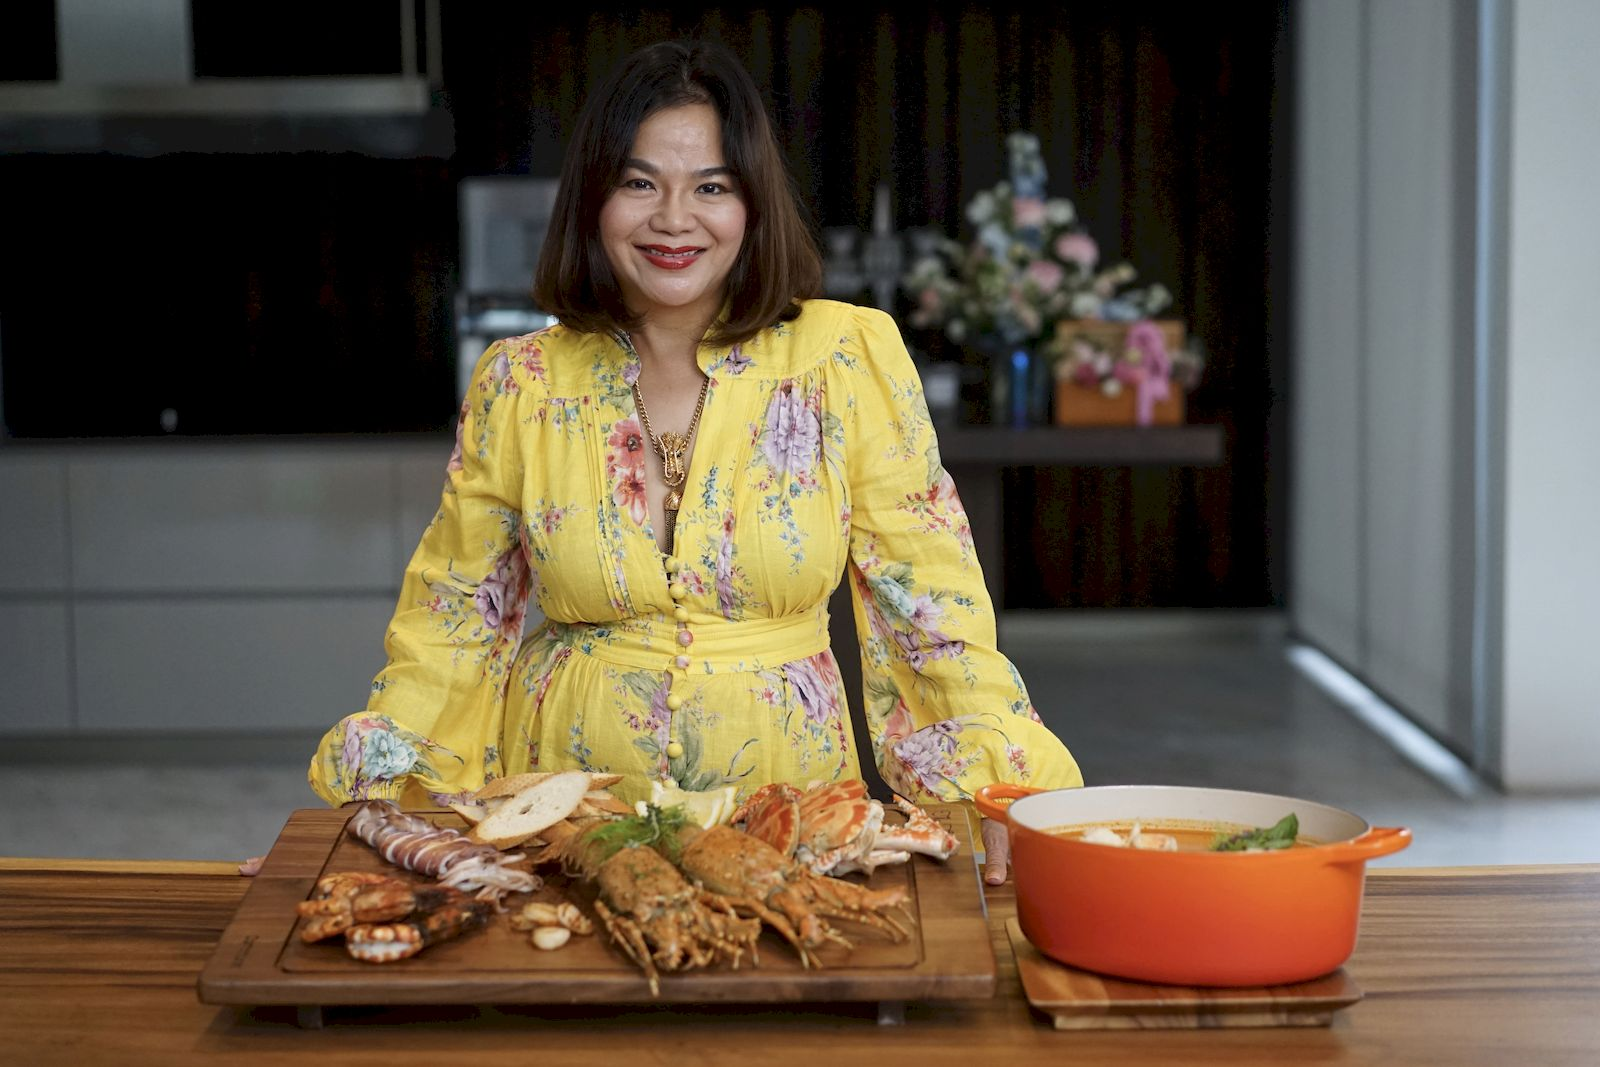 The home chef's recipe: Jean Yip's lobster seafood bouillabaisse